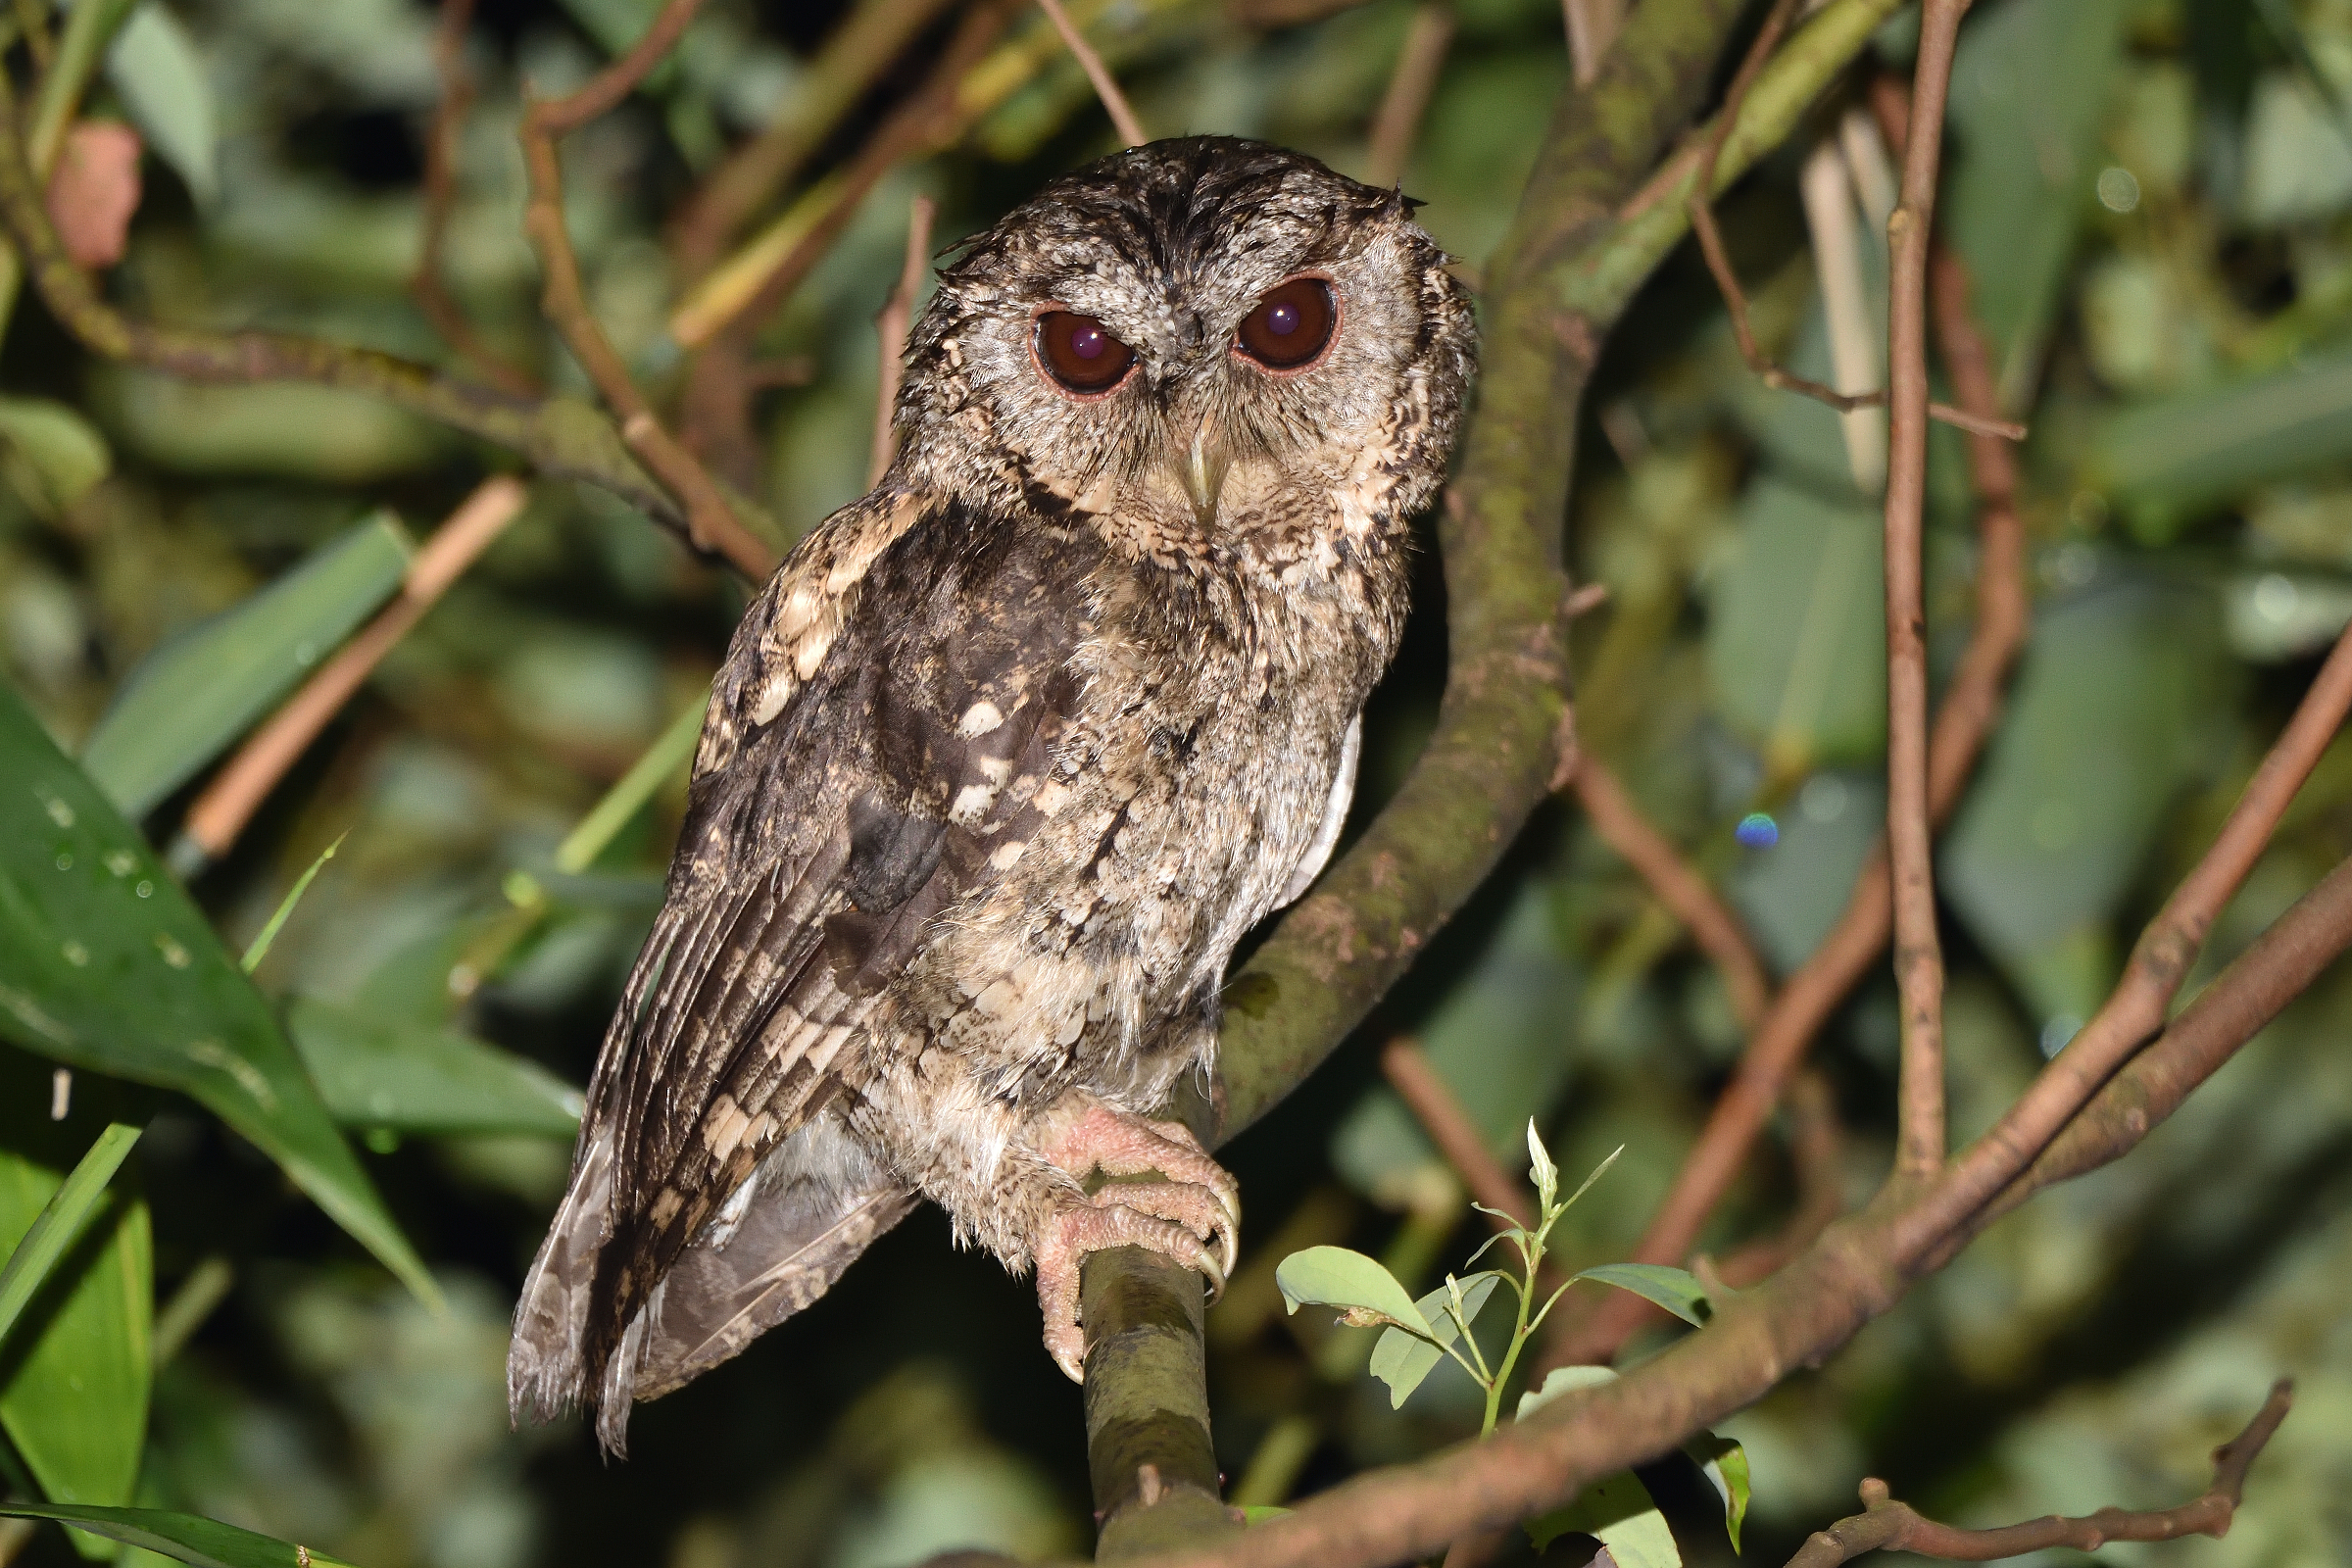 Collard_Scops_Owl_1484_2400